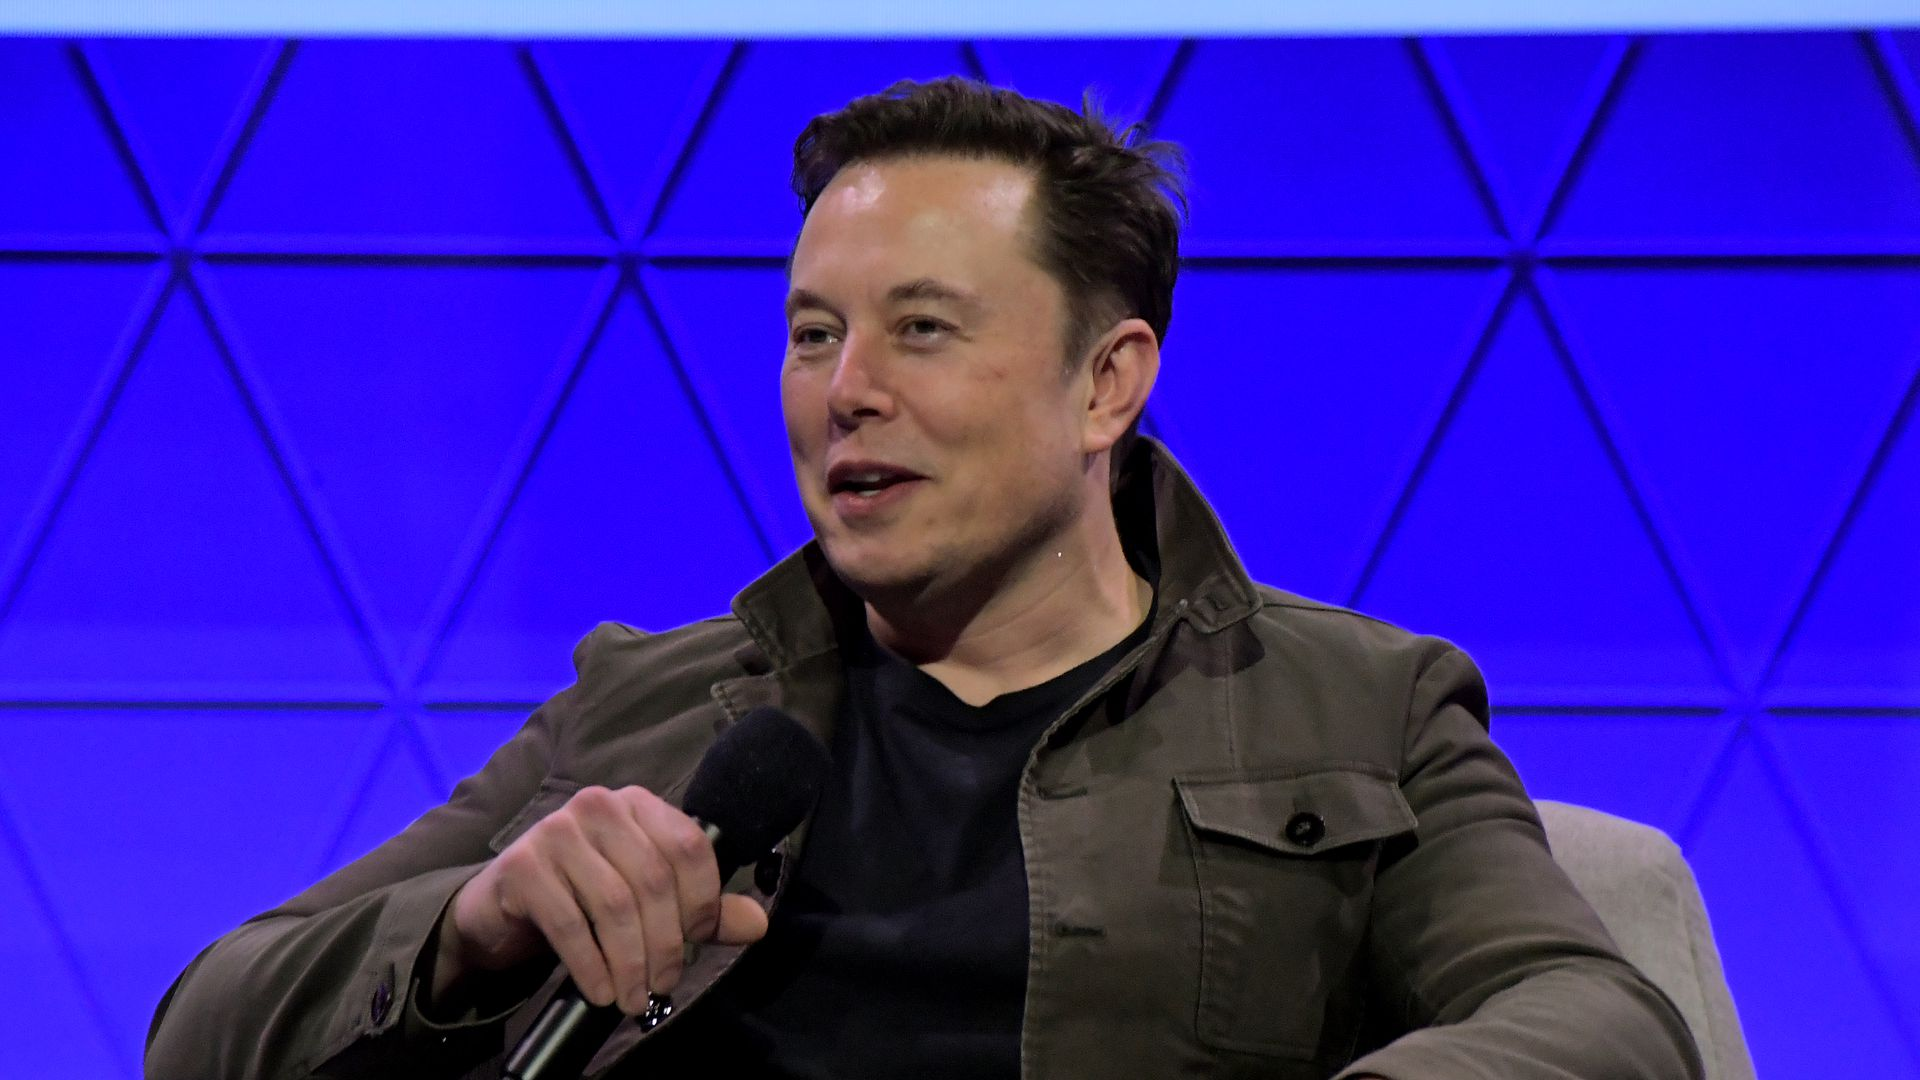 Elon Musk speaks onstage at the Elon Musk in Conversation with Todd Howard panel during E3 2019 at the Novo Theatre on June 13, 2019 in Los Angeles, California.